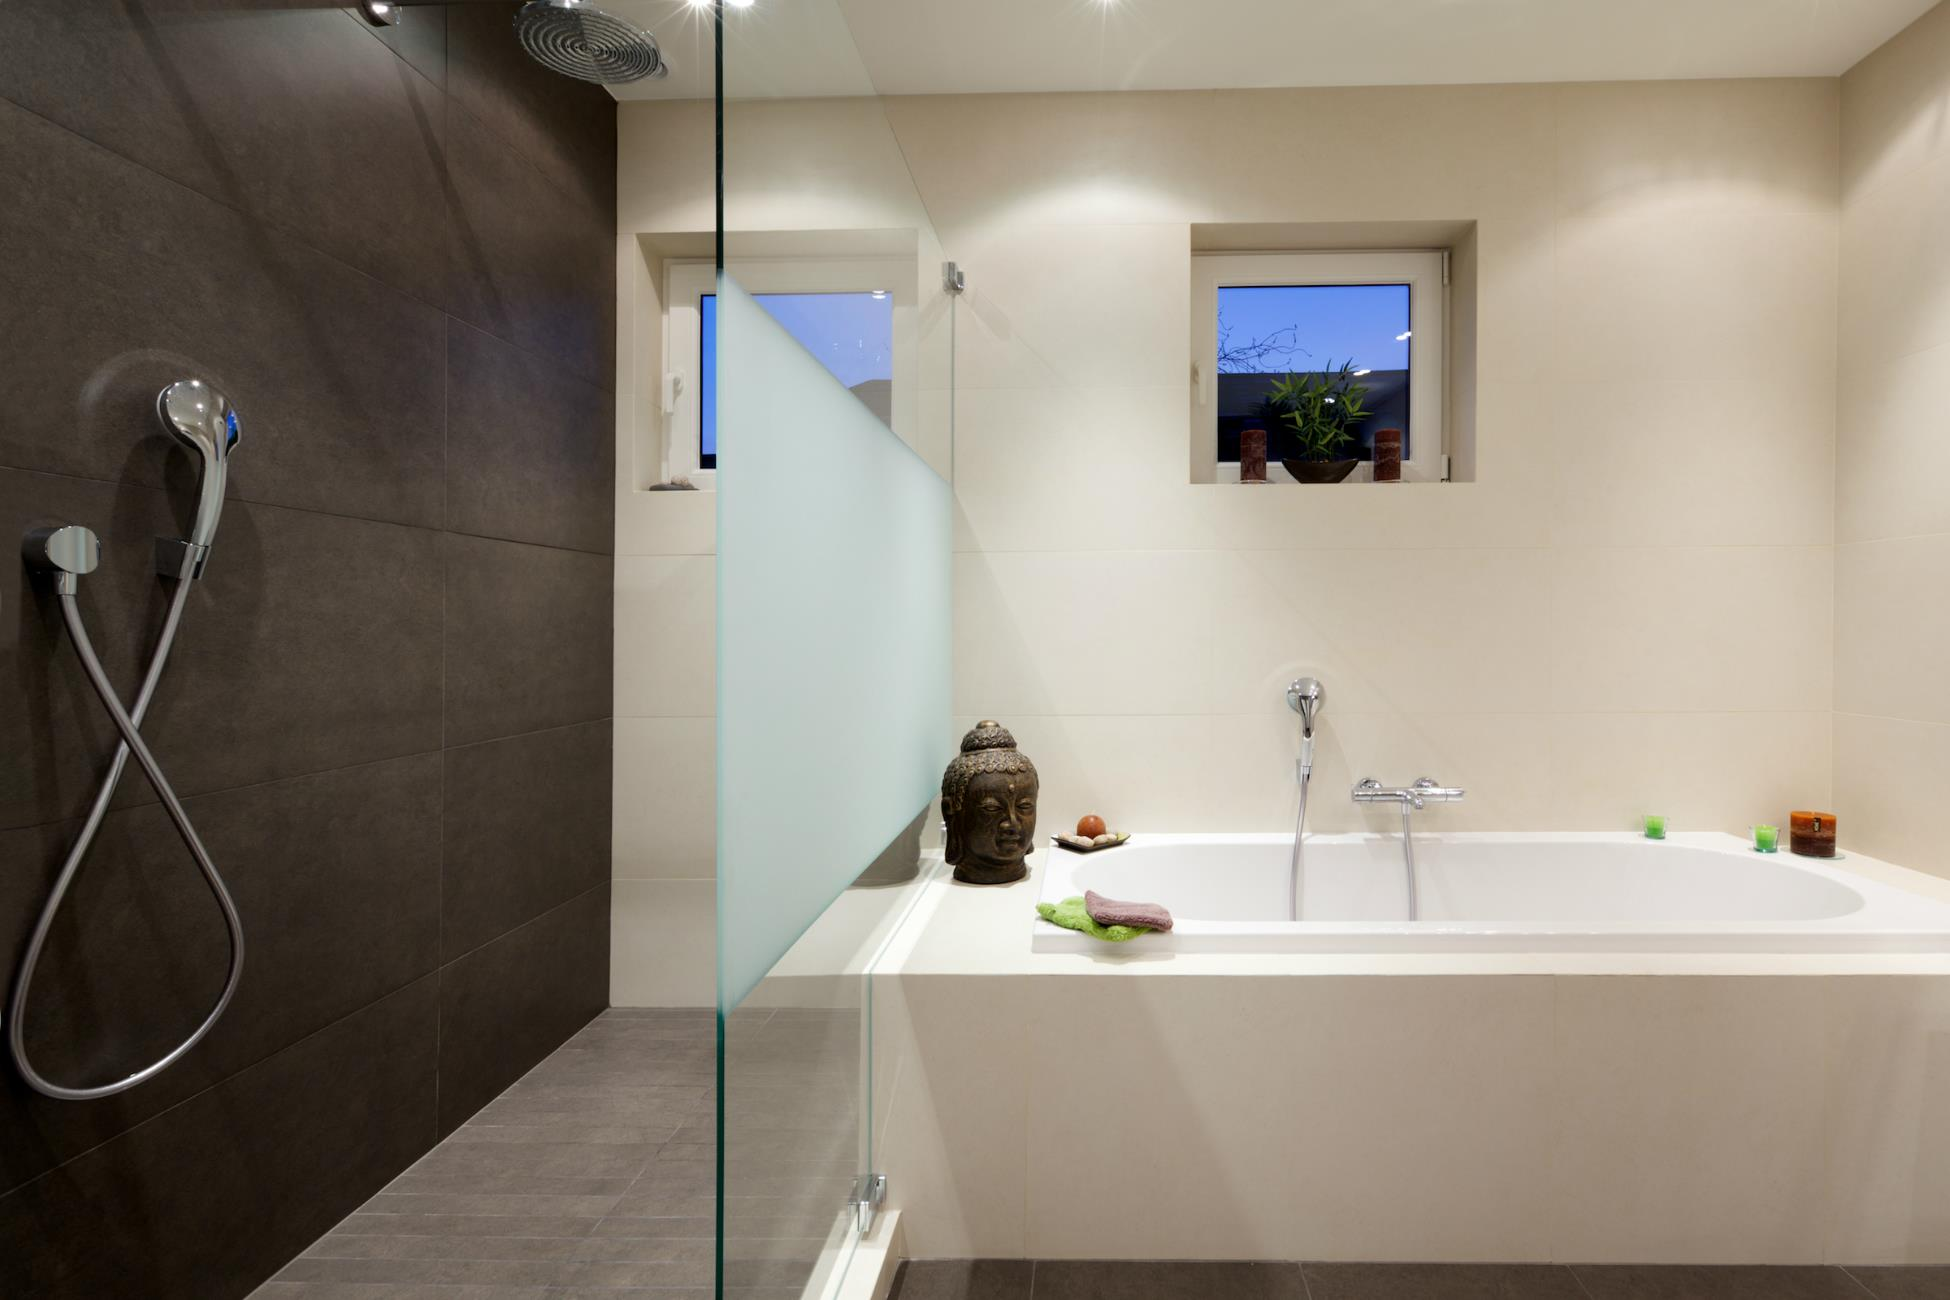 SPECIALISTE SALLE DE BAIN CONTEMPORAINE, RENOVATION MAISON